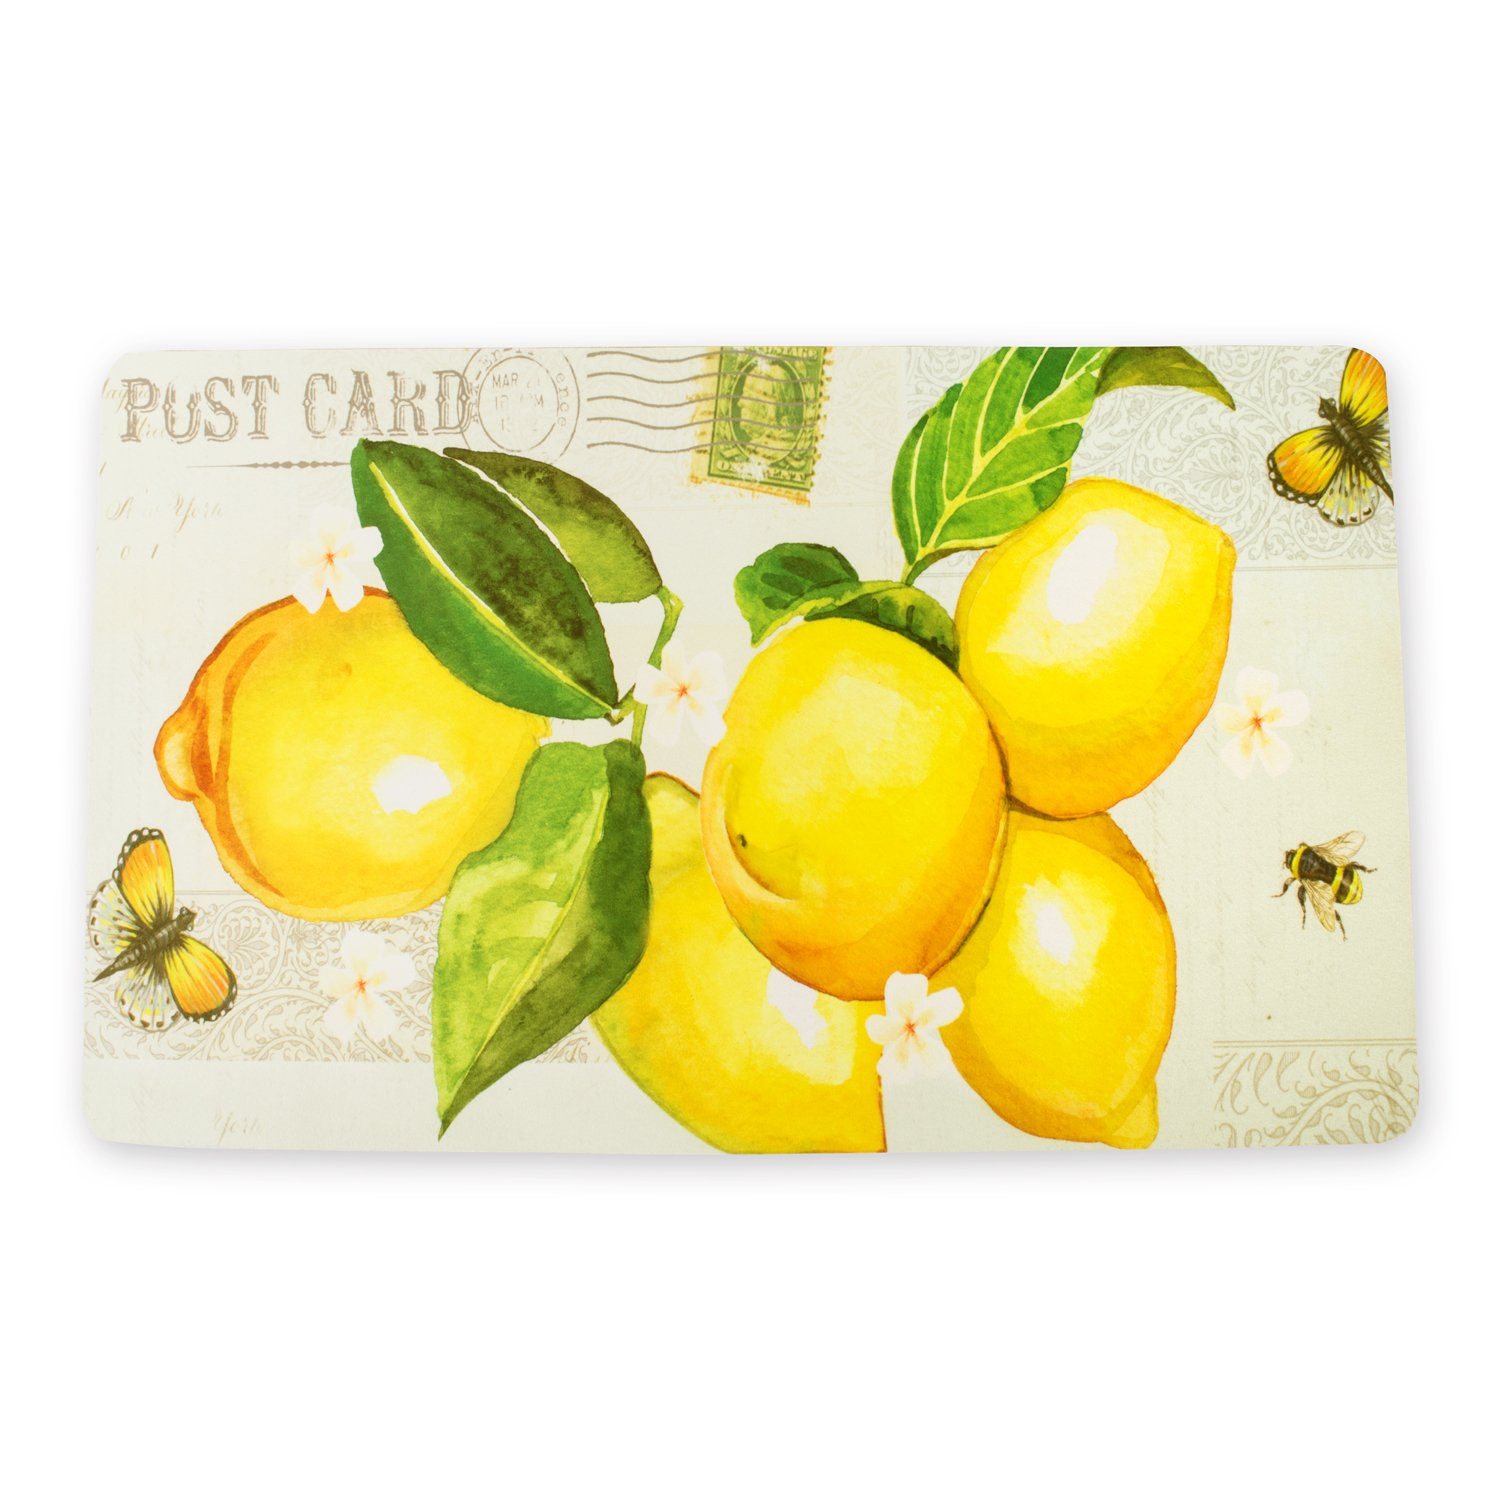 Lemon Decorative Non Slip Kitchen Mat Perfect For in Front of Sink, Stove, Kitchen